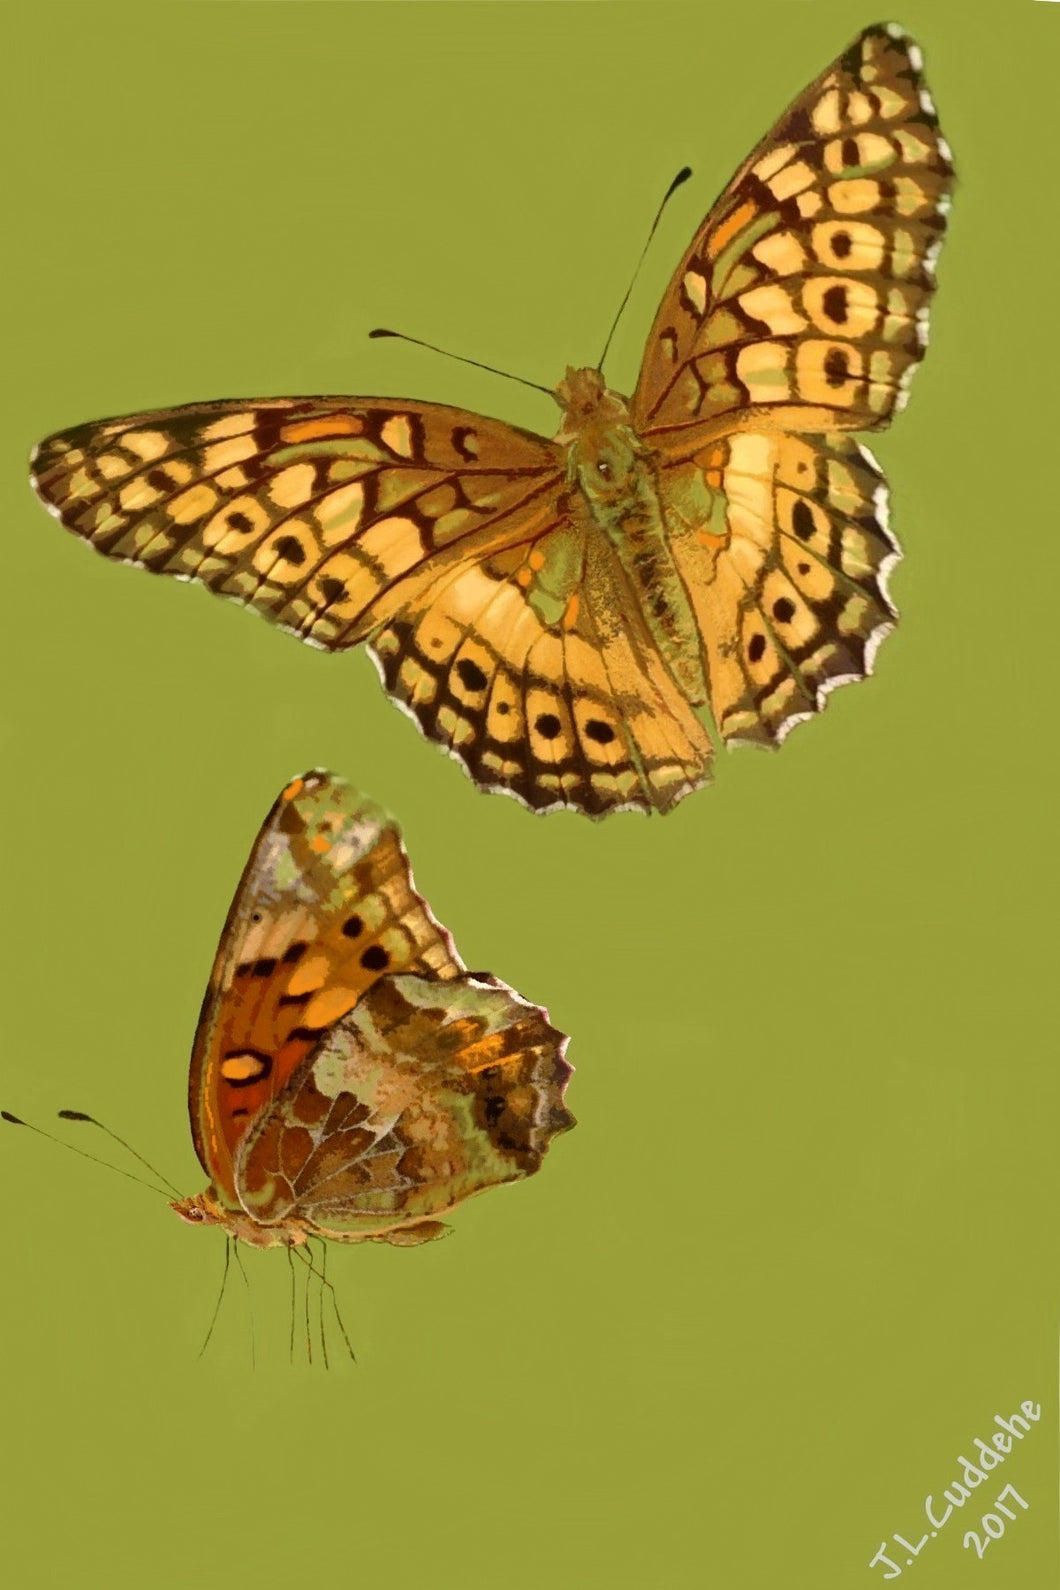 Variegated Fritillary Butterfly Print by Judy Link Cuddehe for Found Link Press.